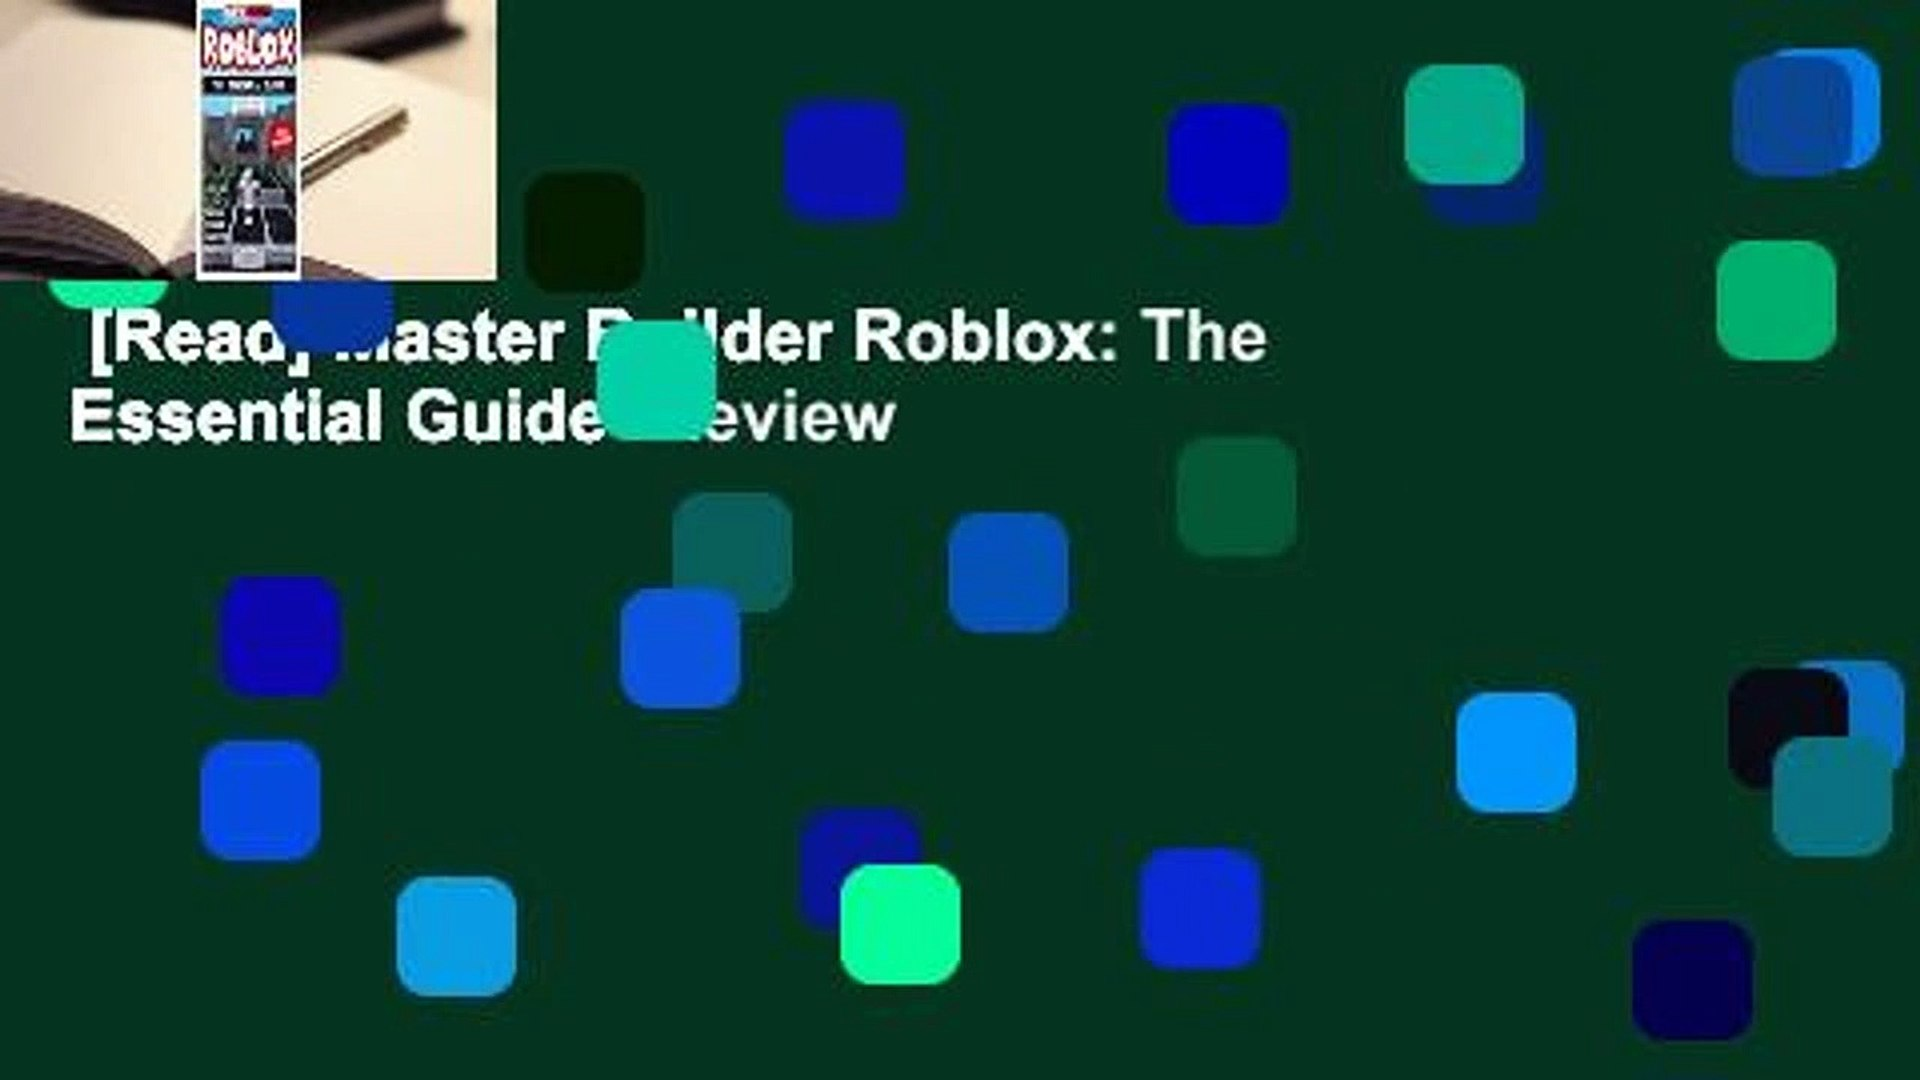 Roblox Studio Toolbox Broken Read Master Builder Roblox The Essential Guide Review Video Dailymotion